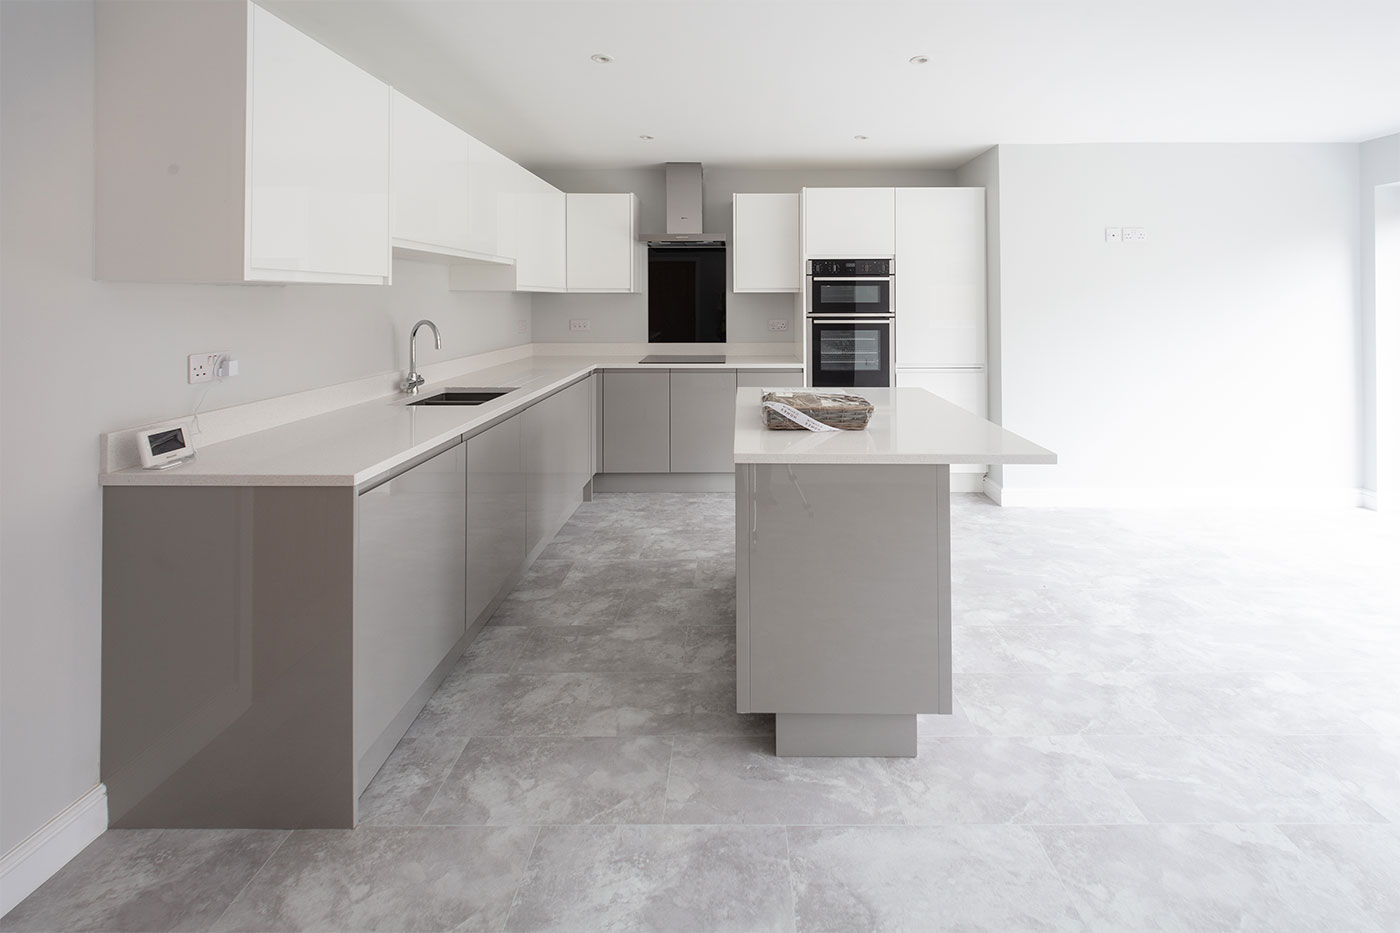 A grey and white modern fitted kitchen